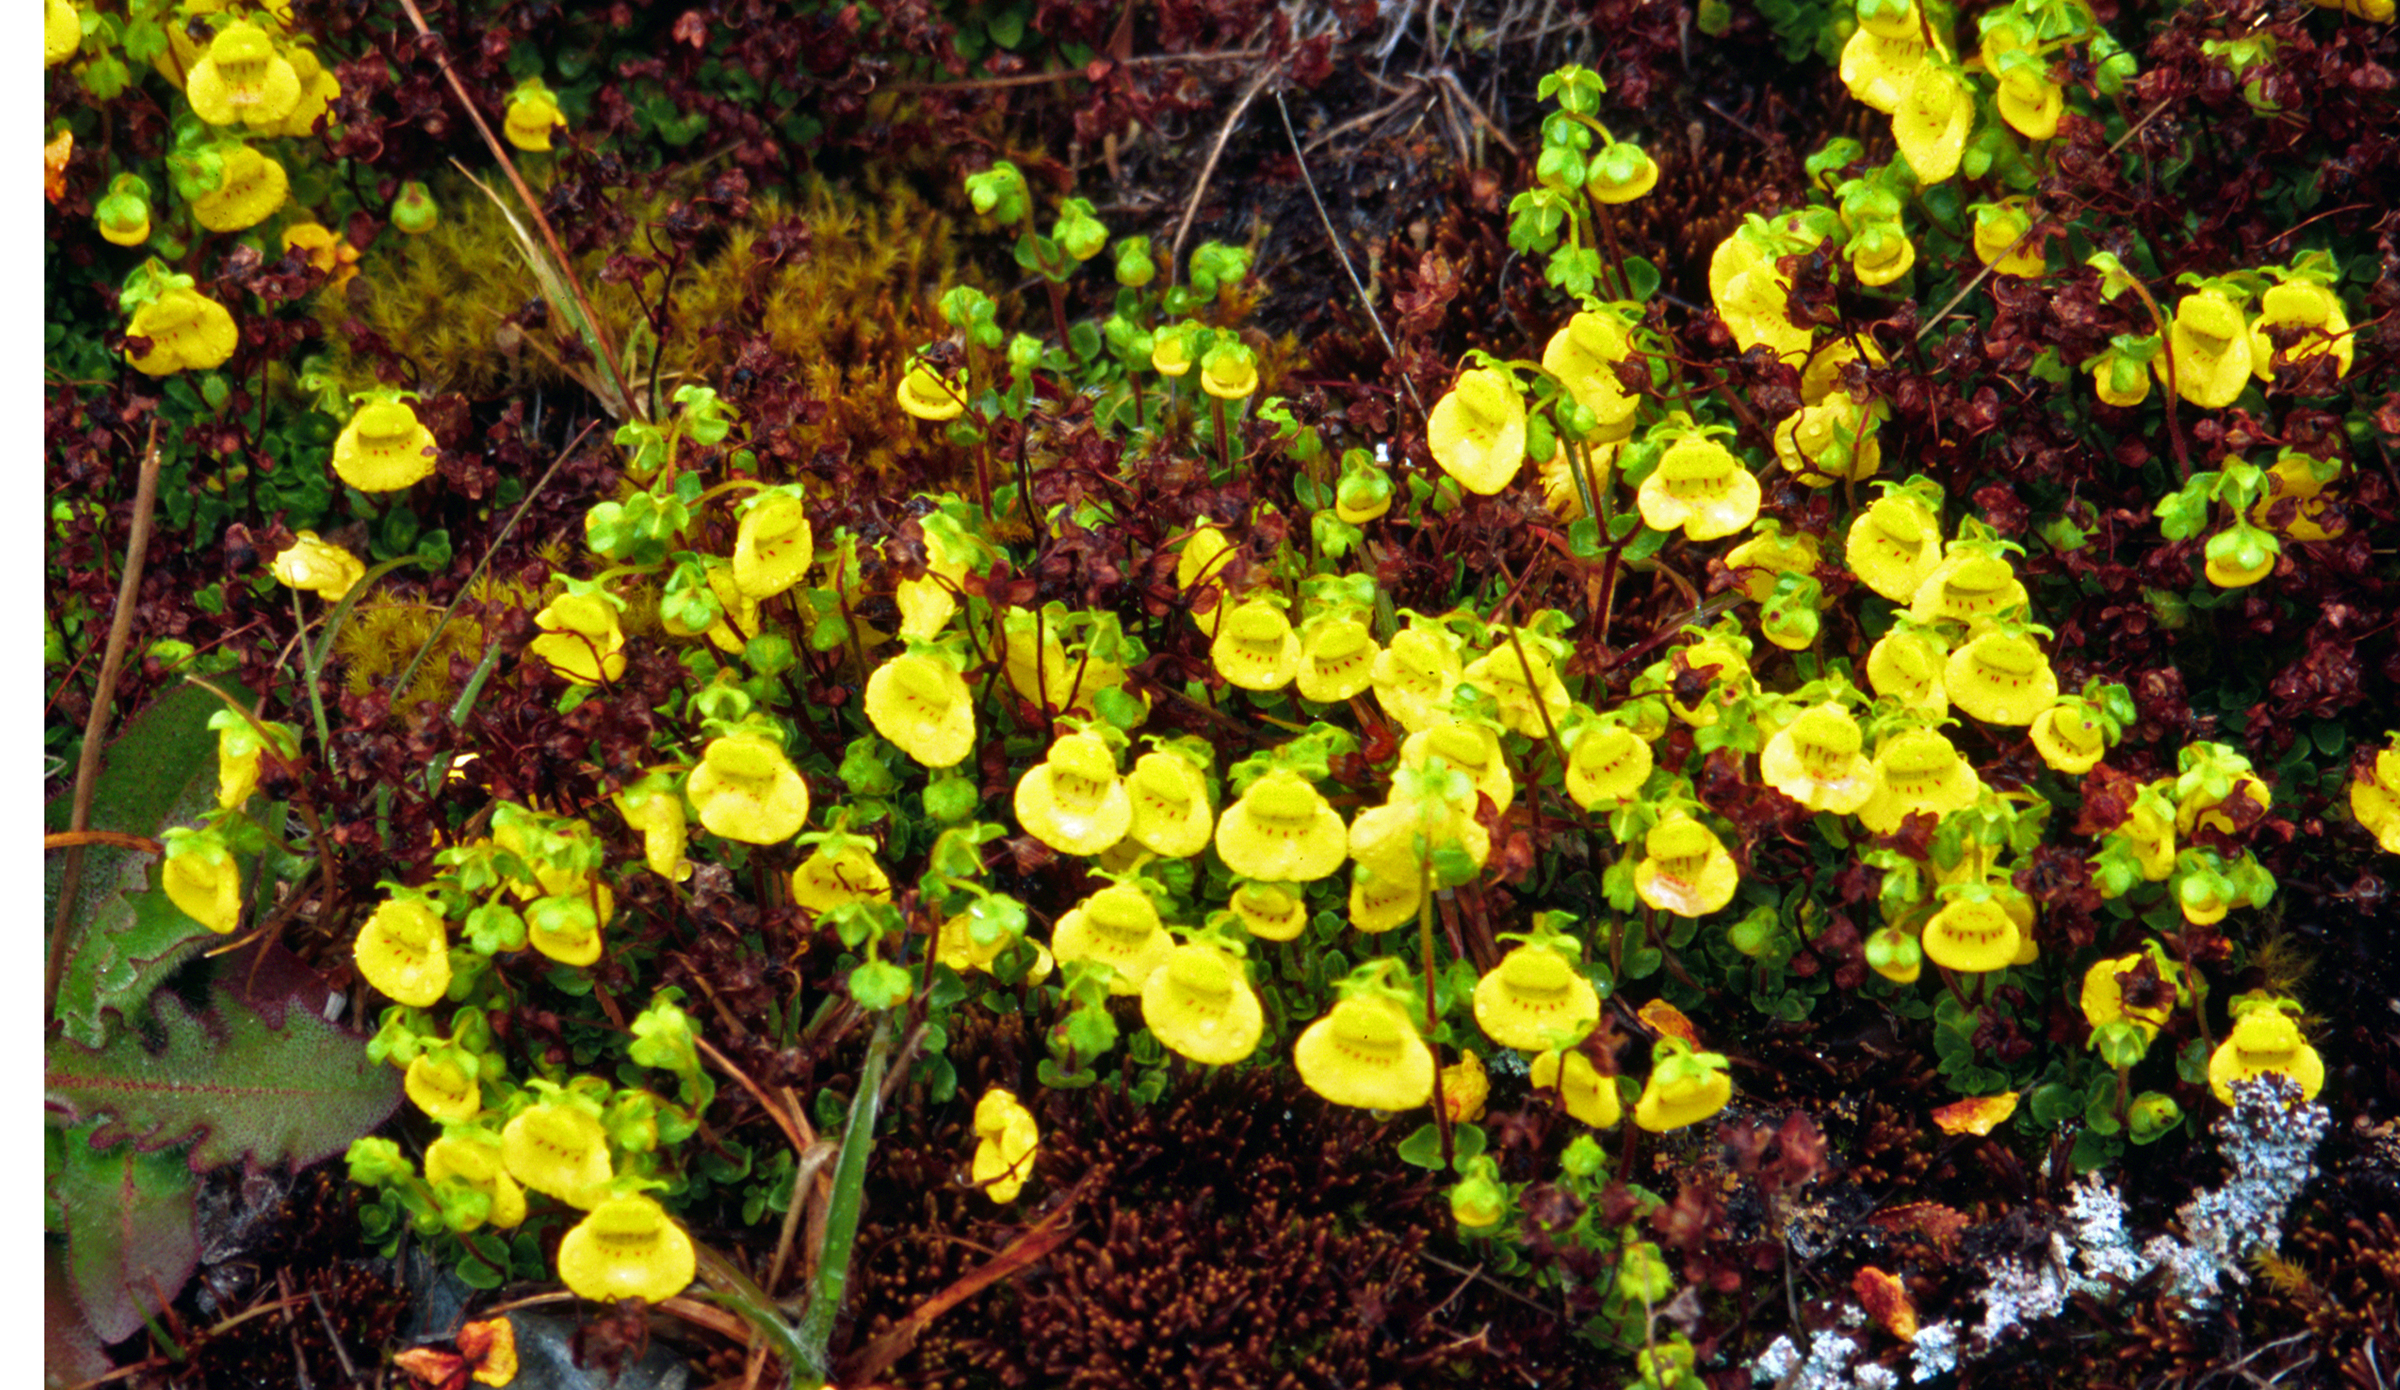 (William M. Ciesla/Forest Health Management International/Bugwood.org) The yellow version of the pocketbook plant.